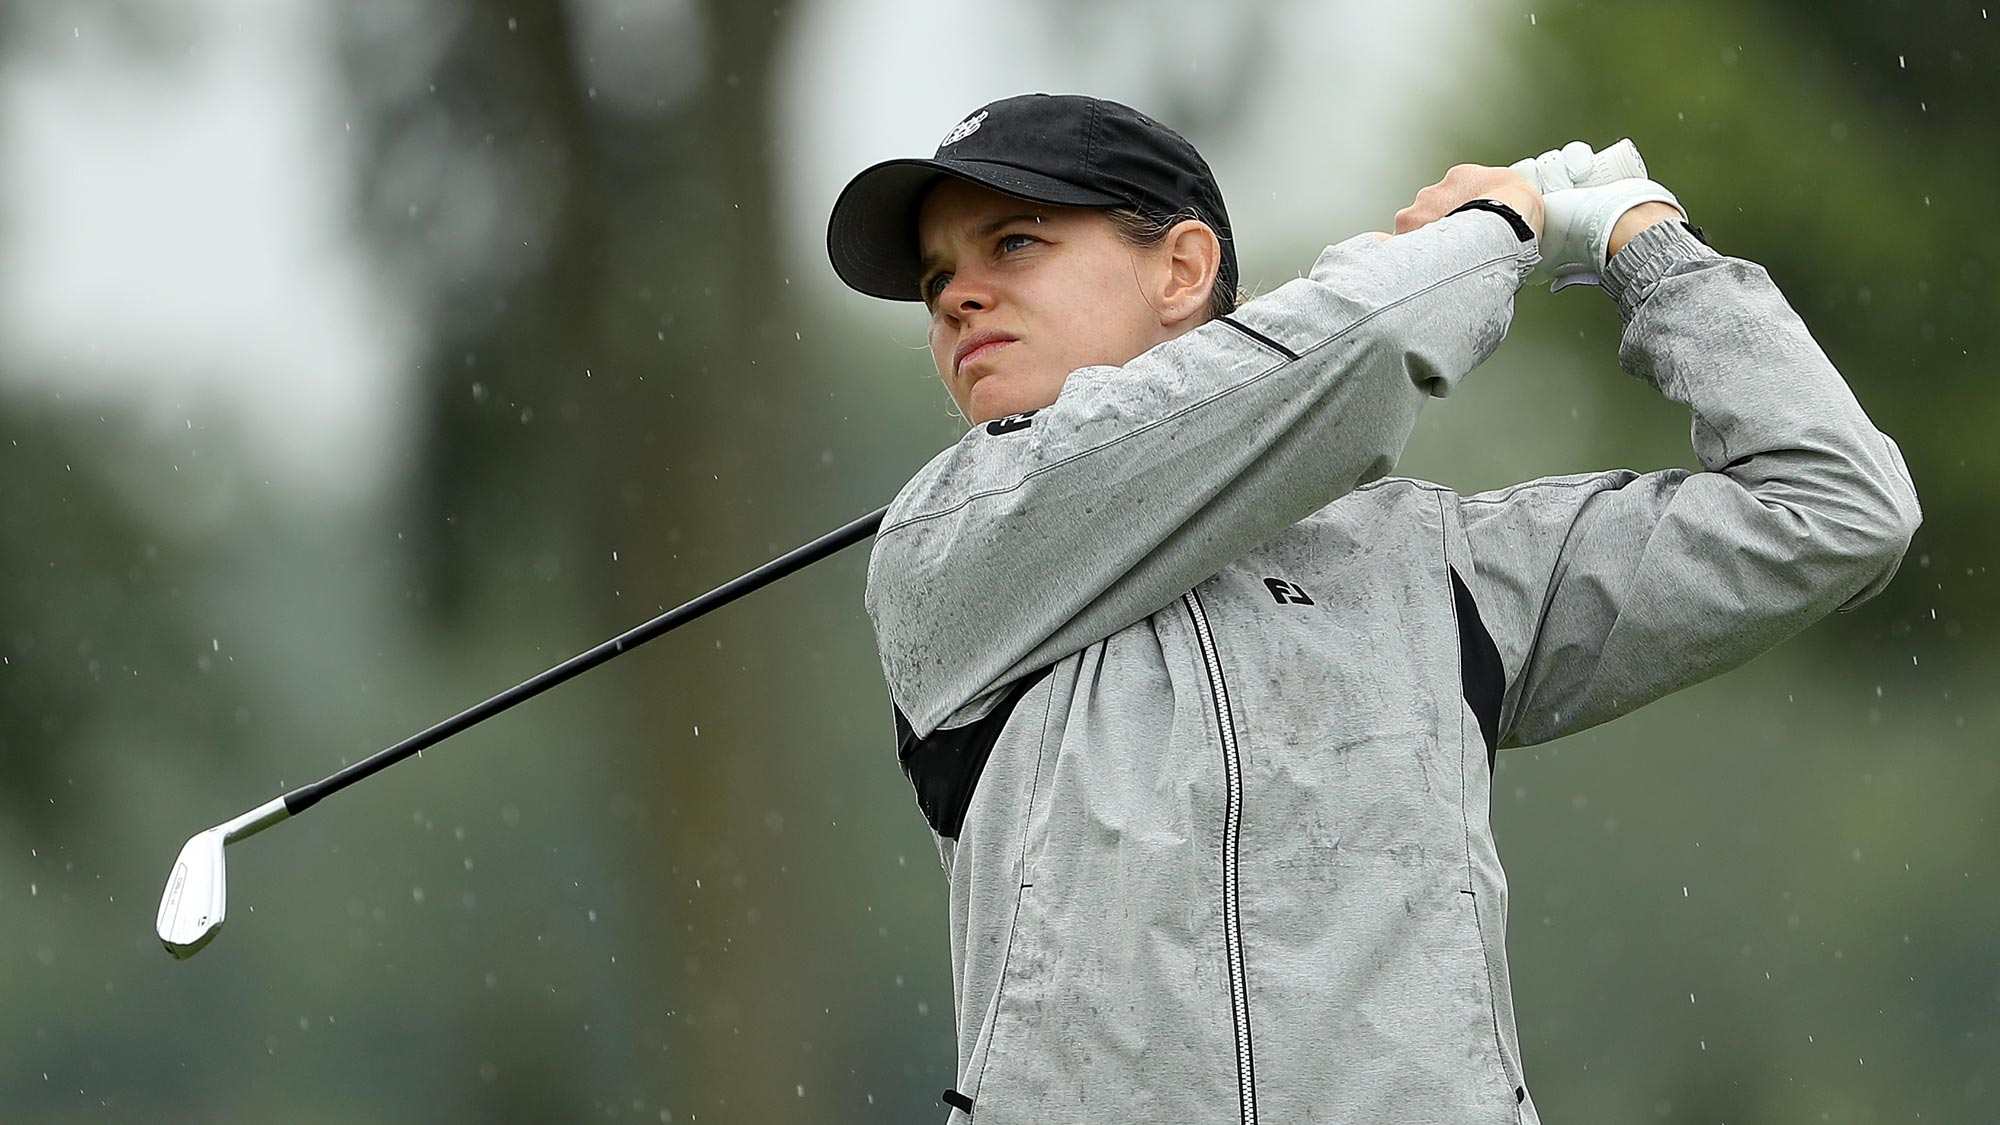 Sarah Schmelzel plays her shot on the fifth hole during the second round of the LPGA Drive On Championship